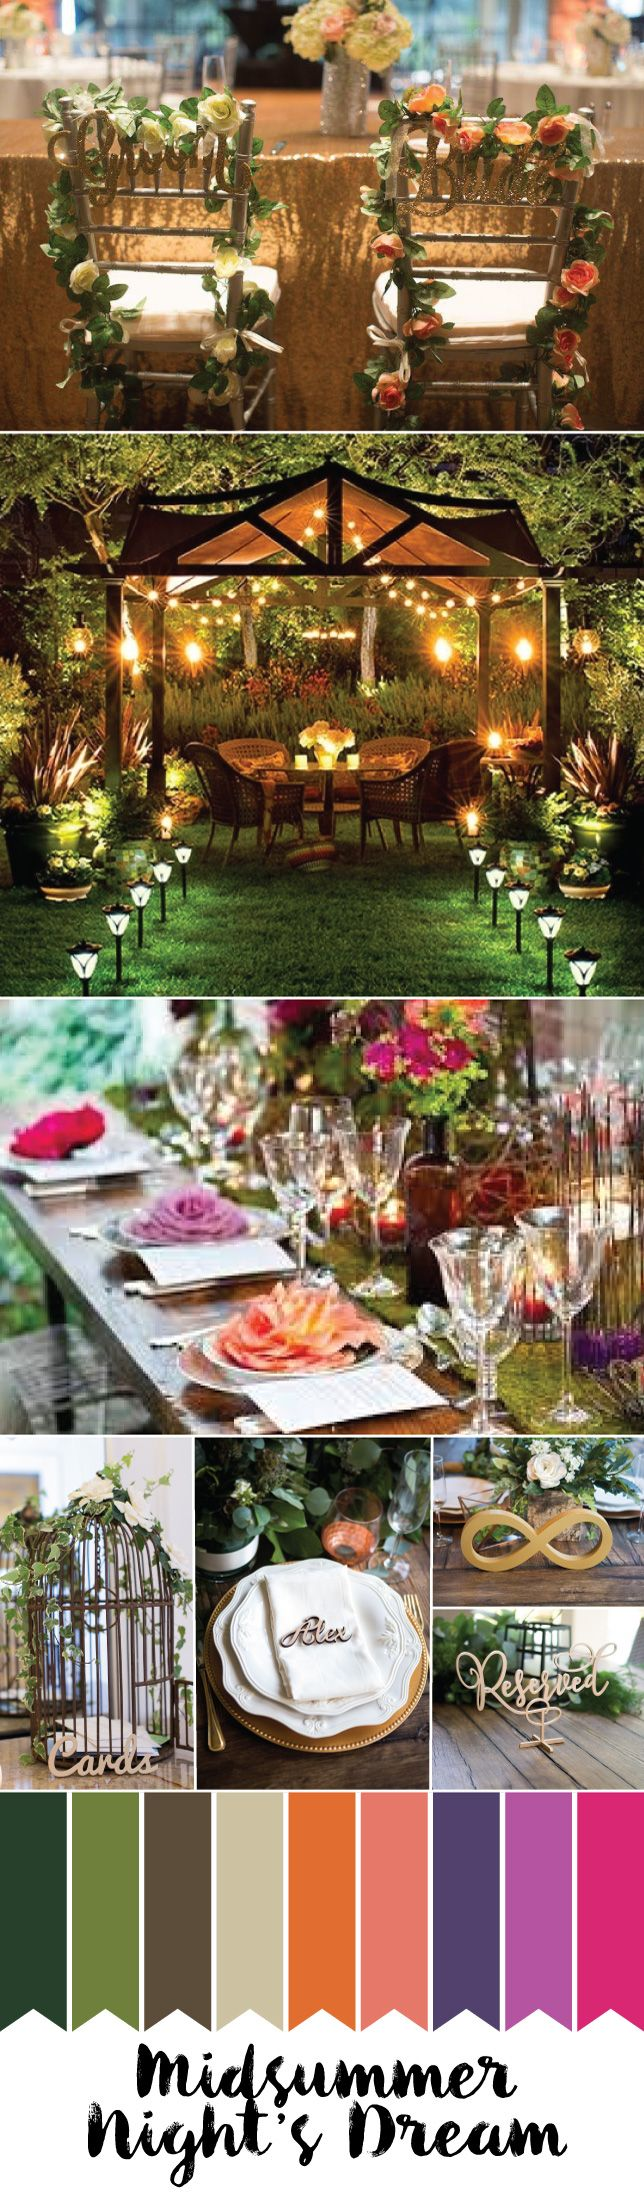 Uncategorized wedding style decor small home garden wedding ideas youtube - Top 25 Best Table Settings For Weddings Ideas On Pinterest Table Decorations For Weddings Card Table Set And Rustic Wedding Tables